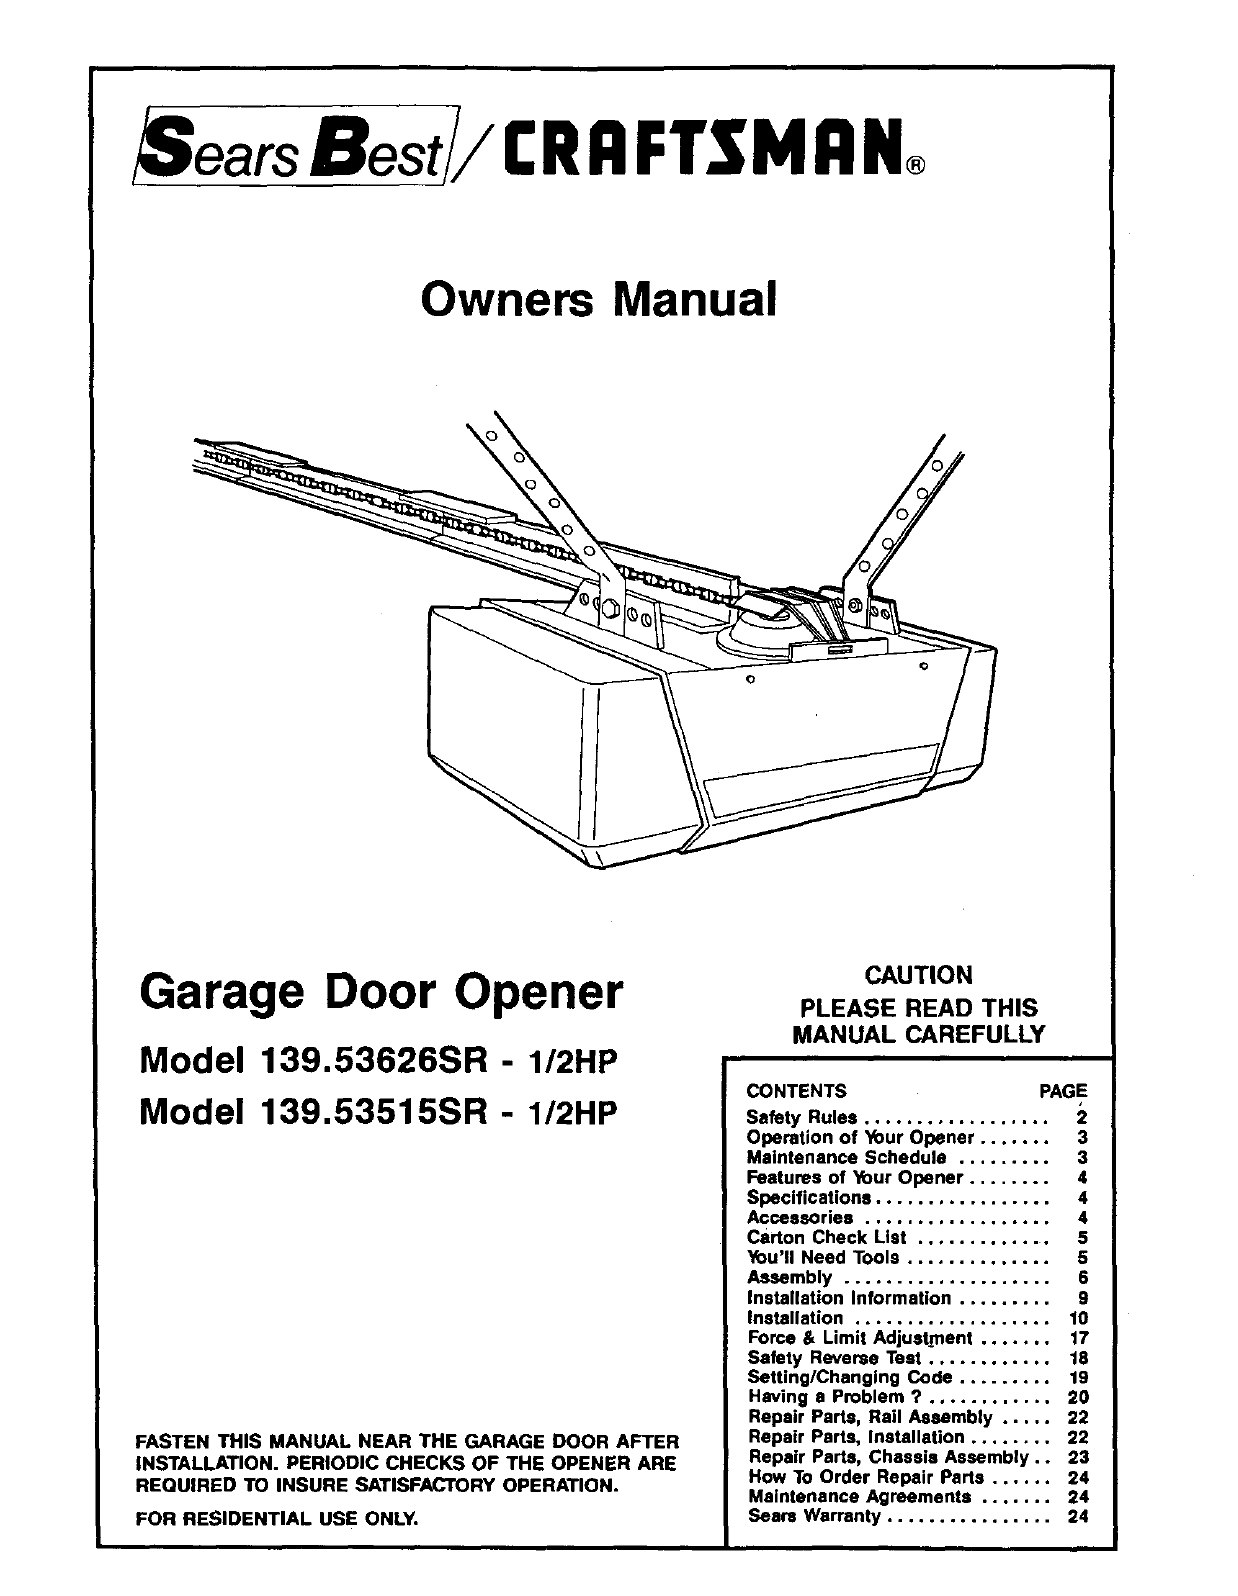 6e97bce9 7ab4 4d1d 9173 64e7868174d5 bg1 craftsman garage door opener 139 53515sr i 2hp user guide craftsman garage door opener sensor wiring diagram at crackthecode.co